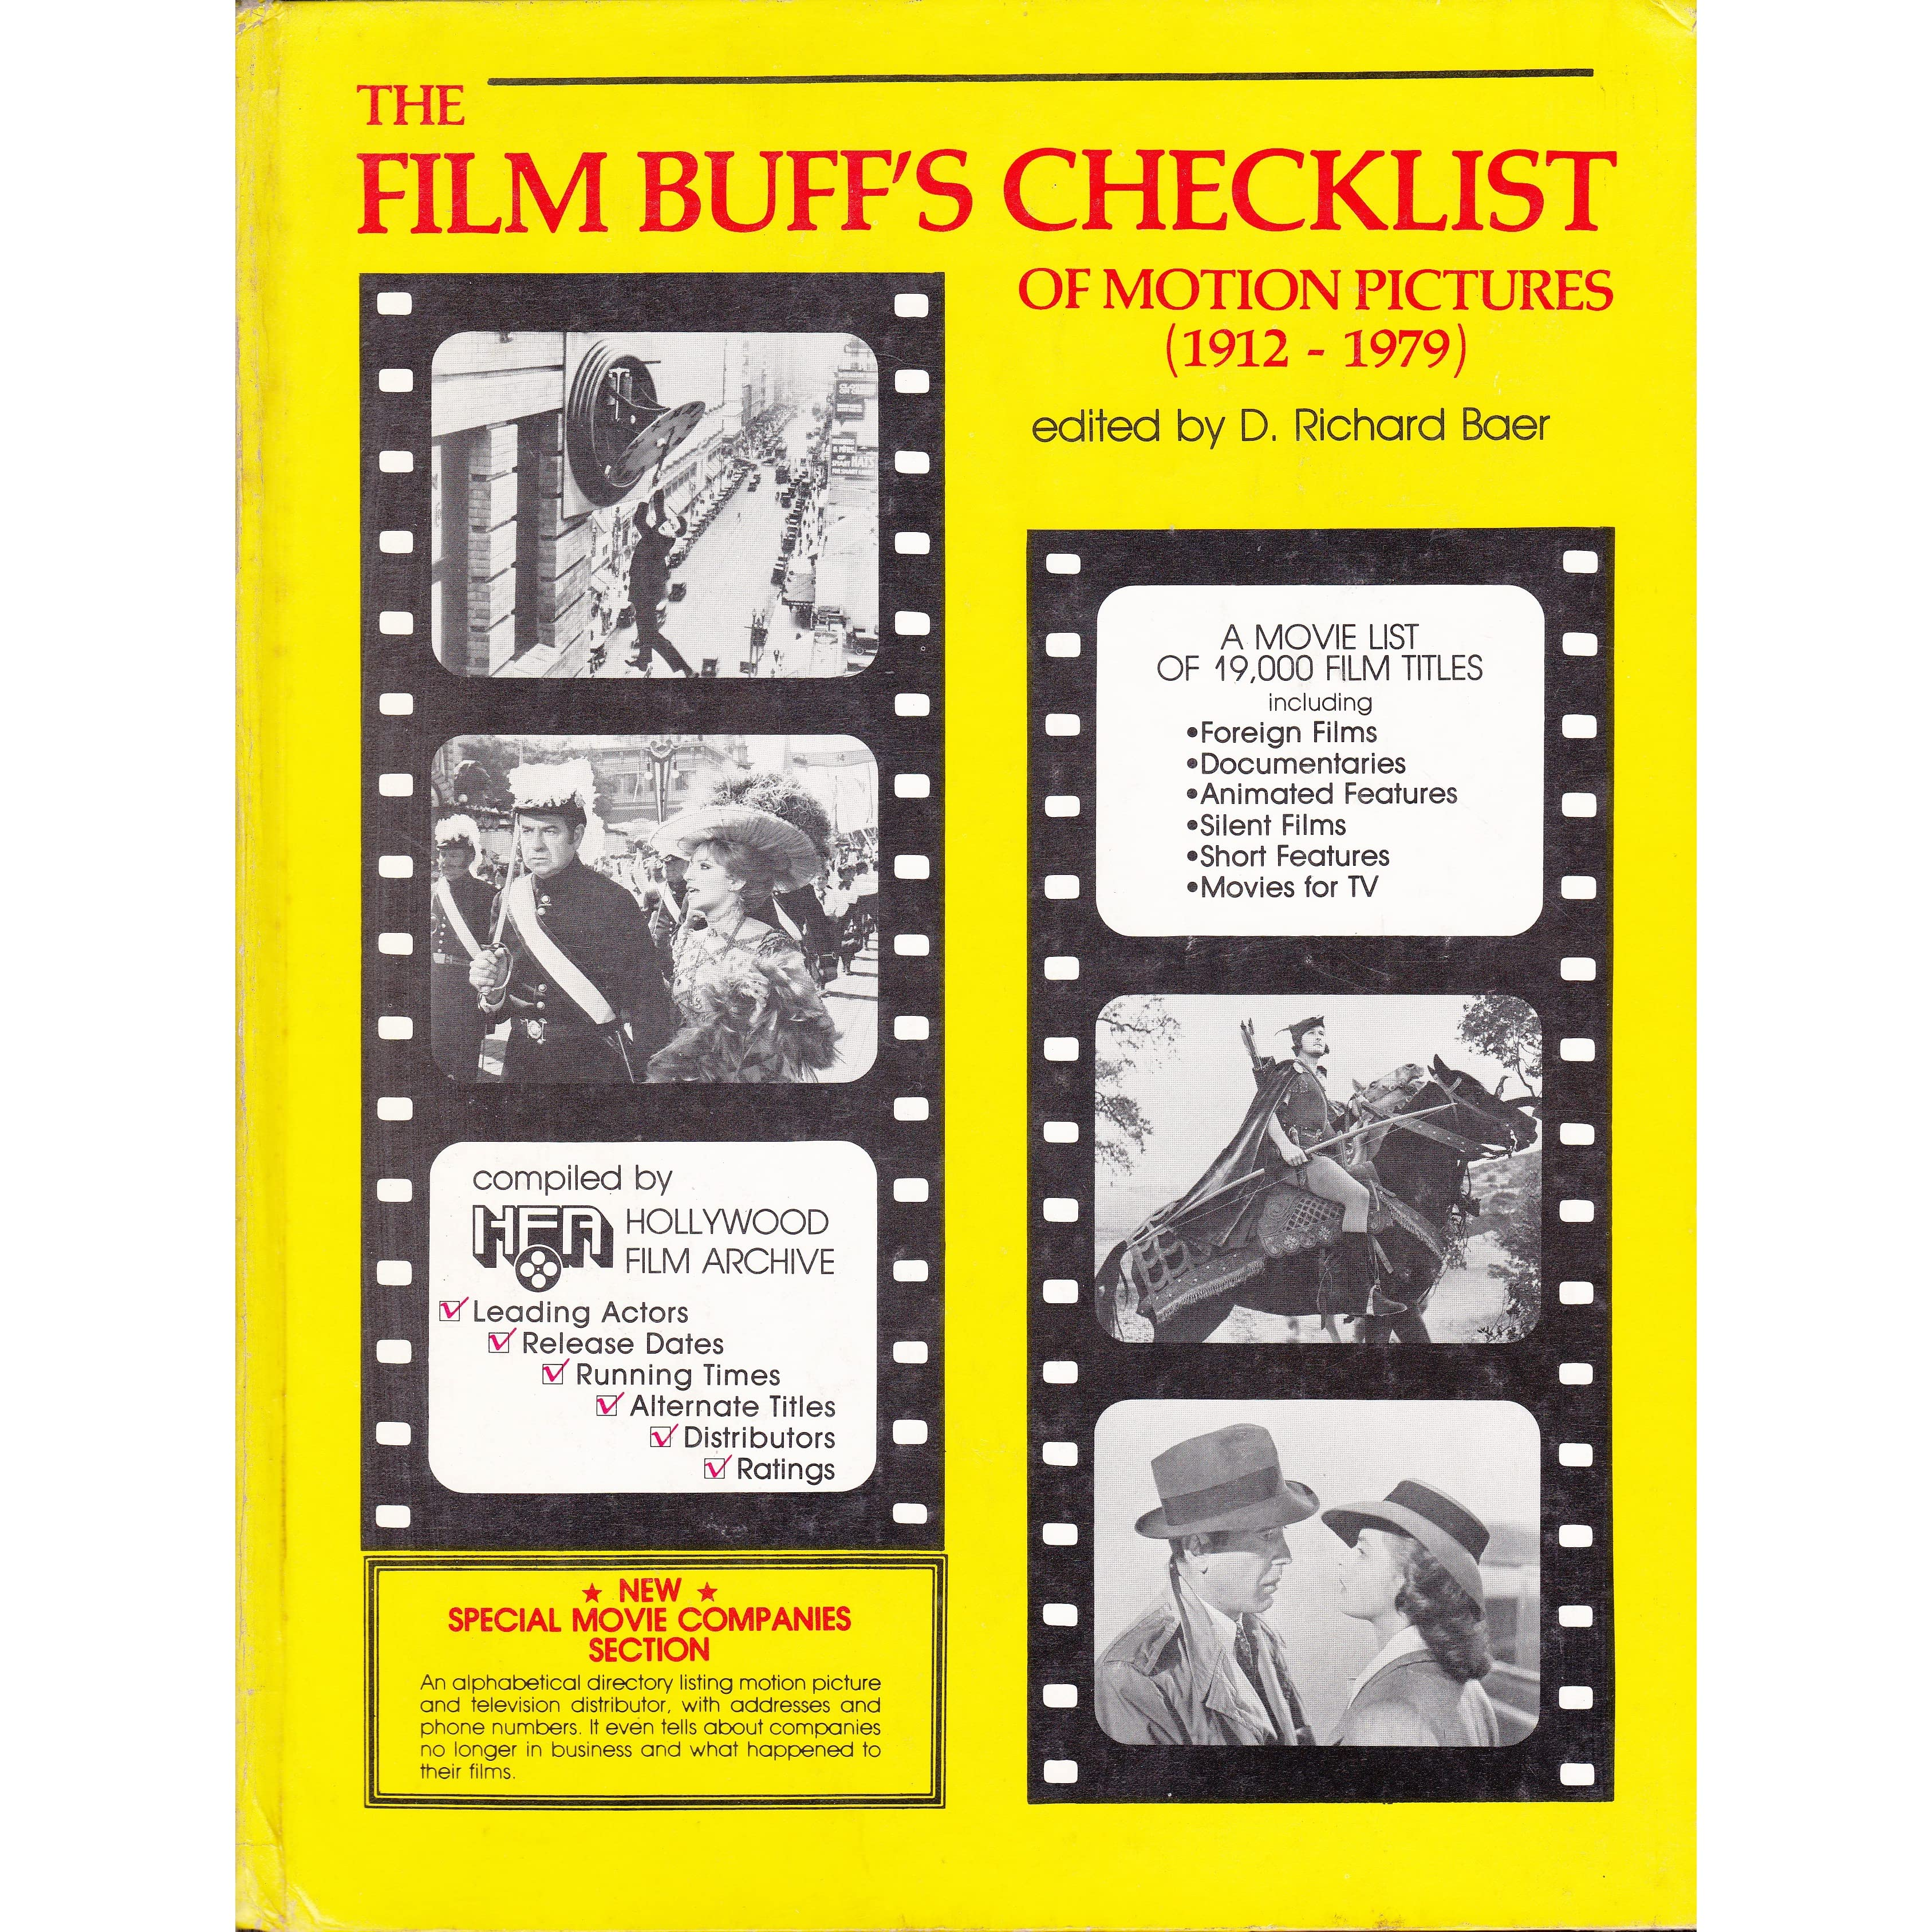 the film buff s checklist of motion pictures by d richard baer